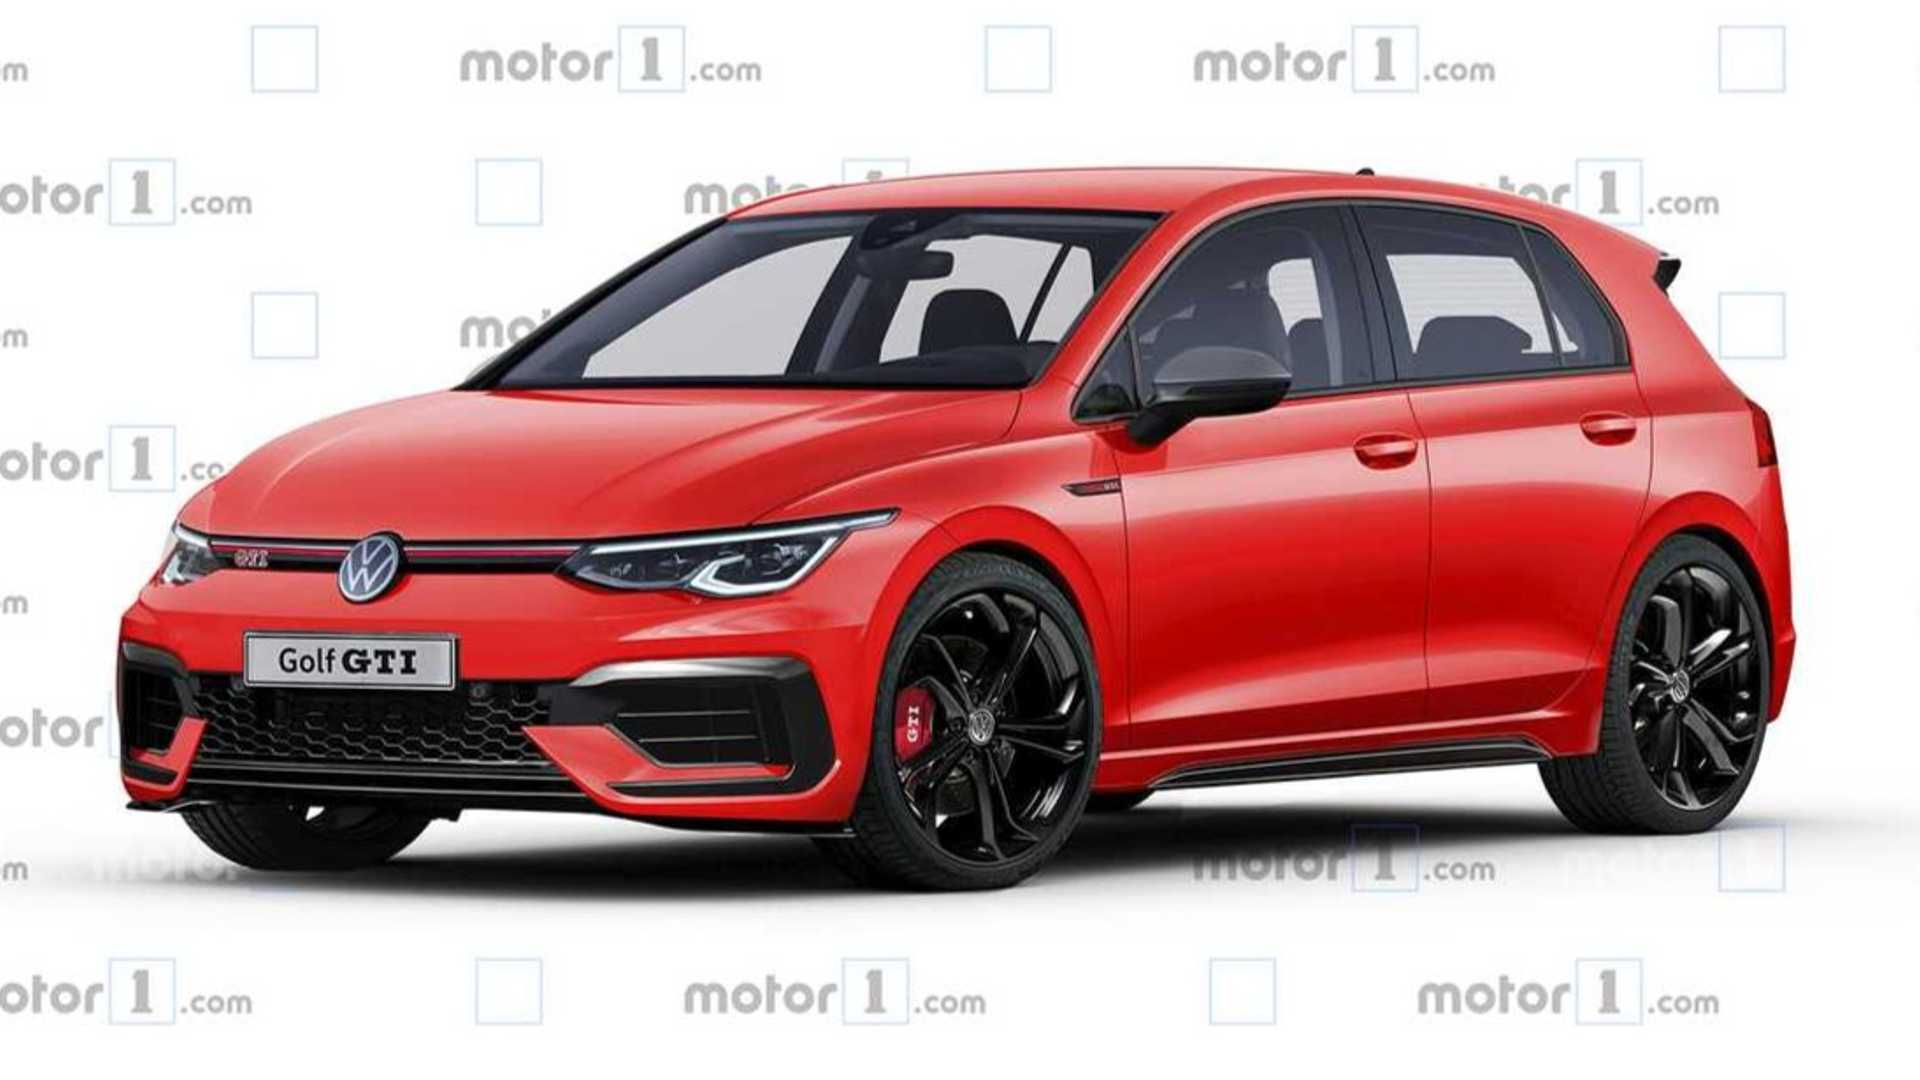 Volkswagen GTI confirmed for Geneva debut